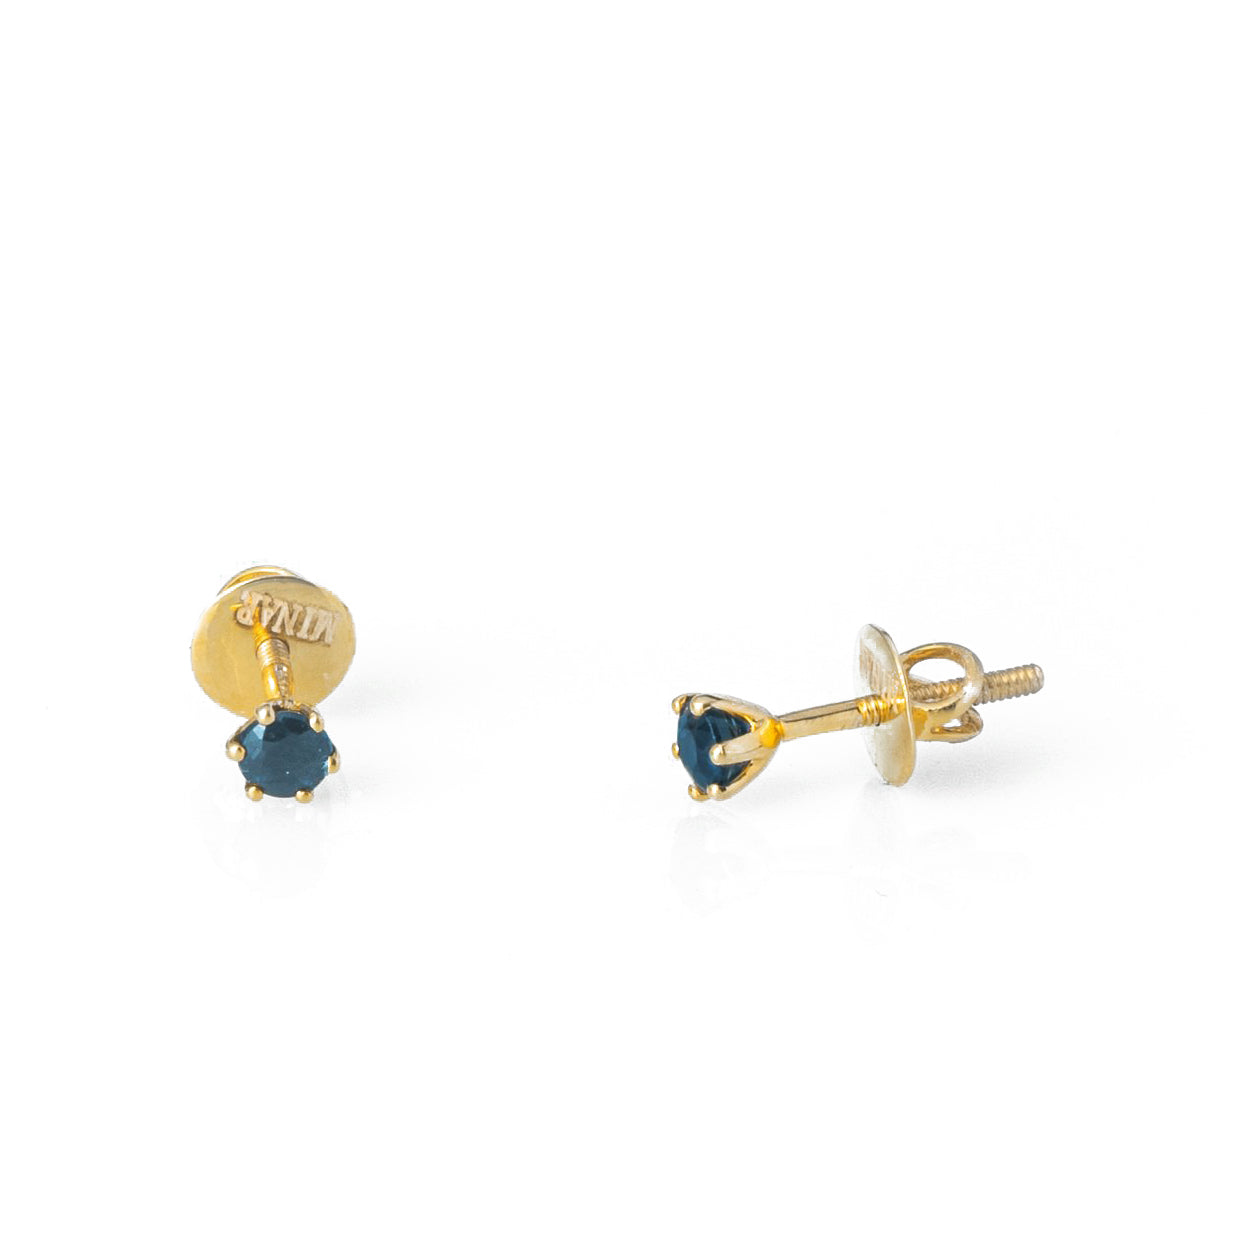 18ct Yellow Gold 0.39ct Round Brilliant Cut Sapphire Stud Earrings (MCS3127)